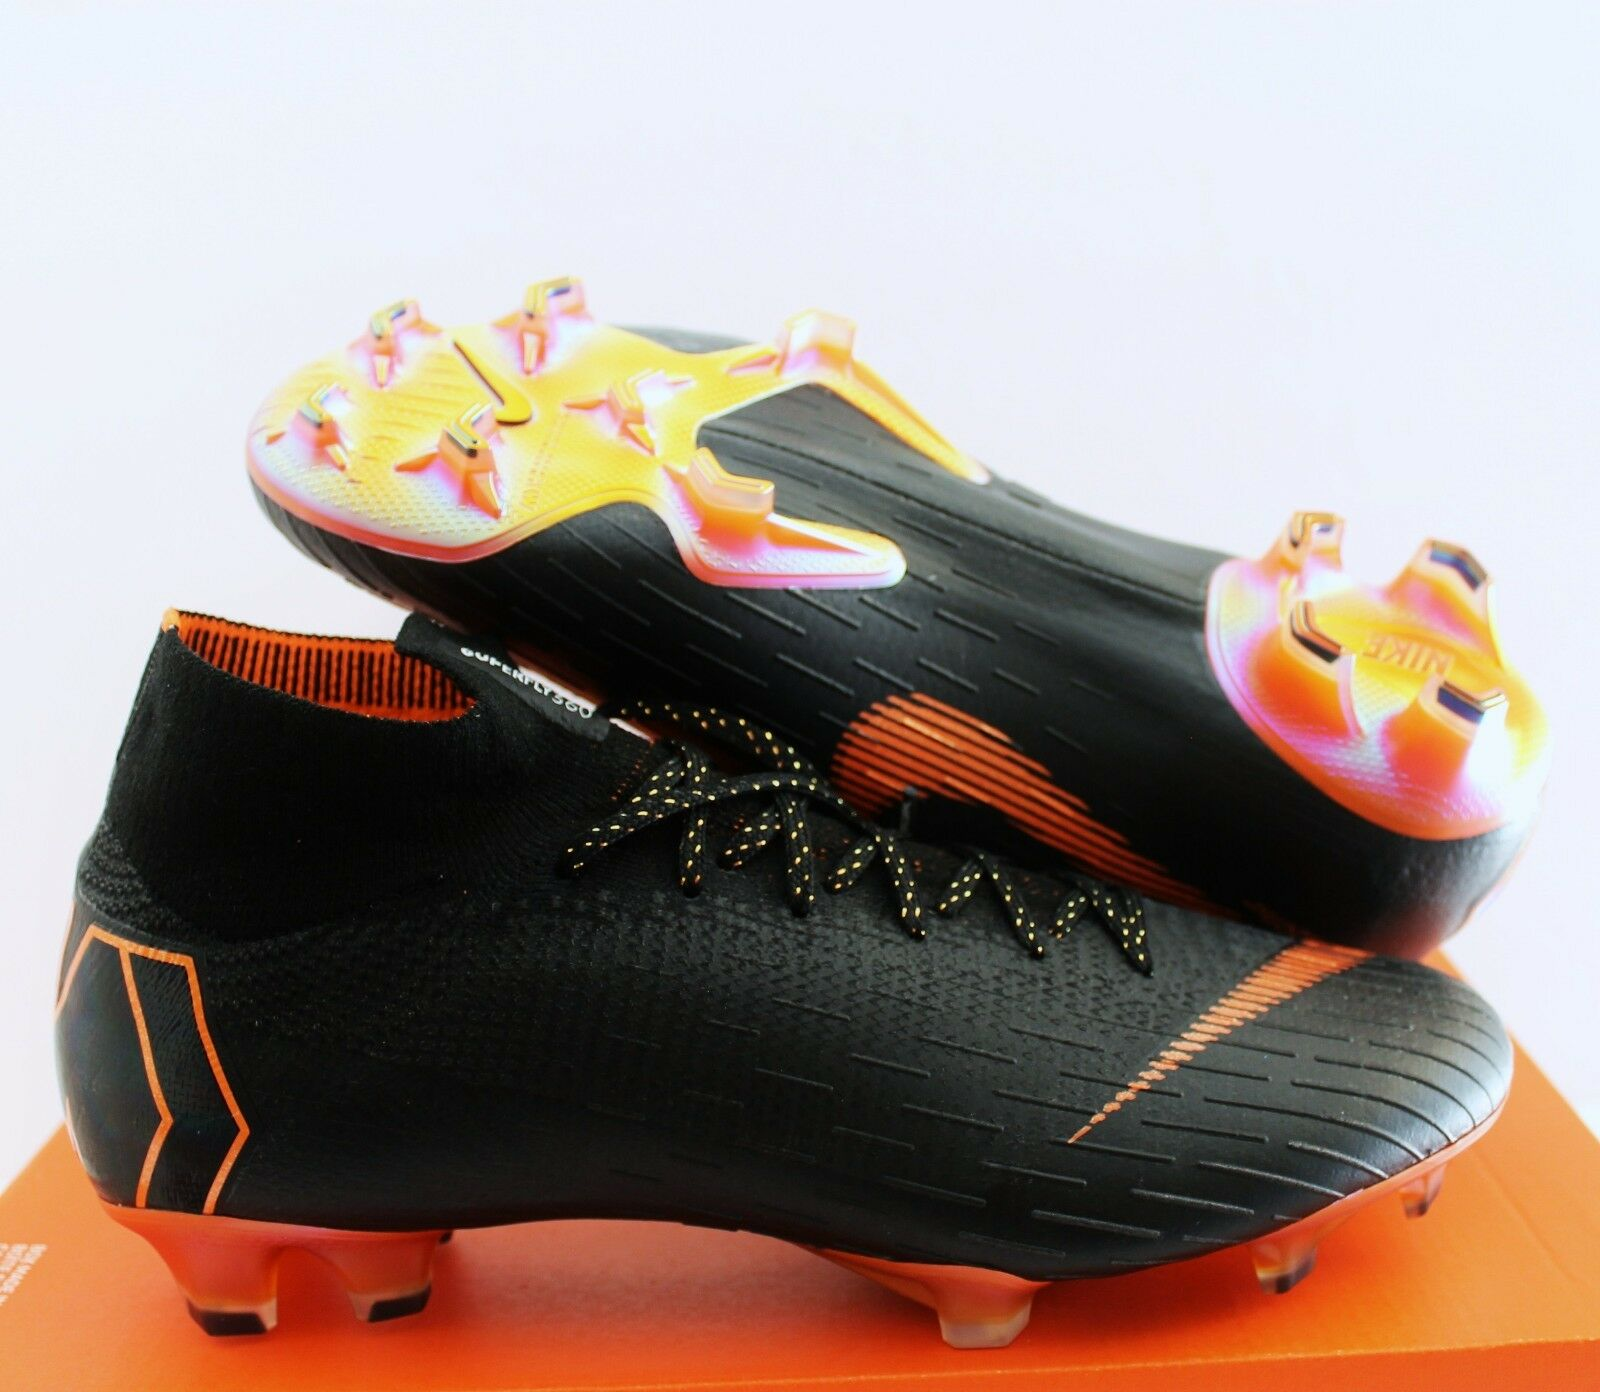 NIKE SUPERFLY 6 ELITE FG noir-TOTAL ORANGE-blanc SZ 9 [AH7365-081]